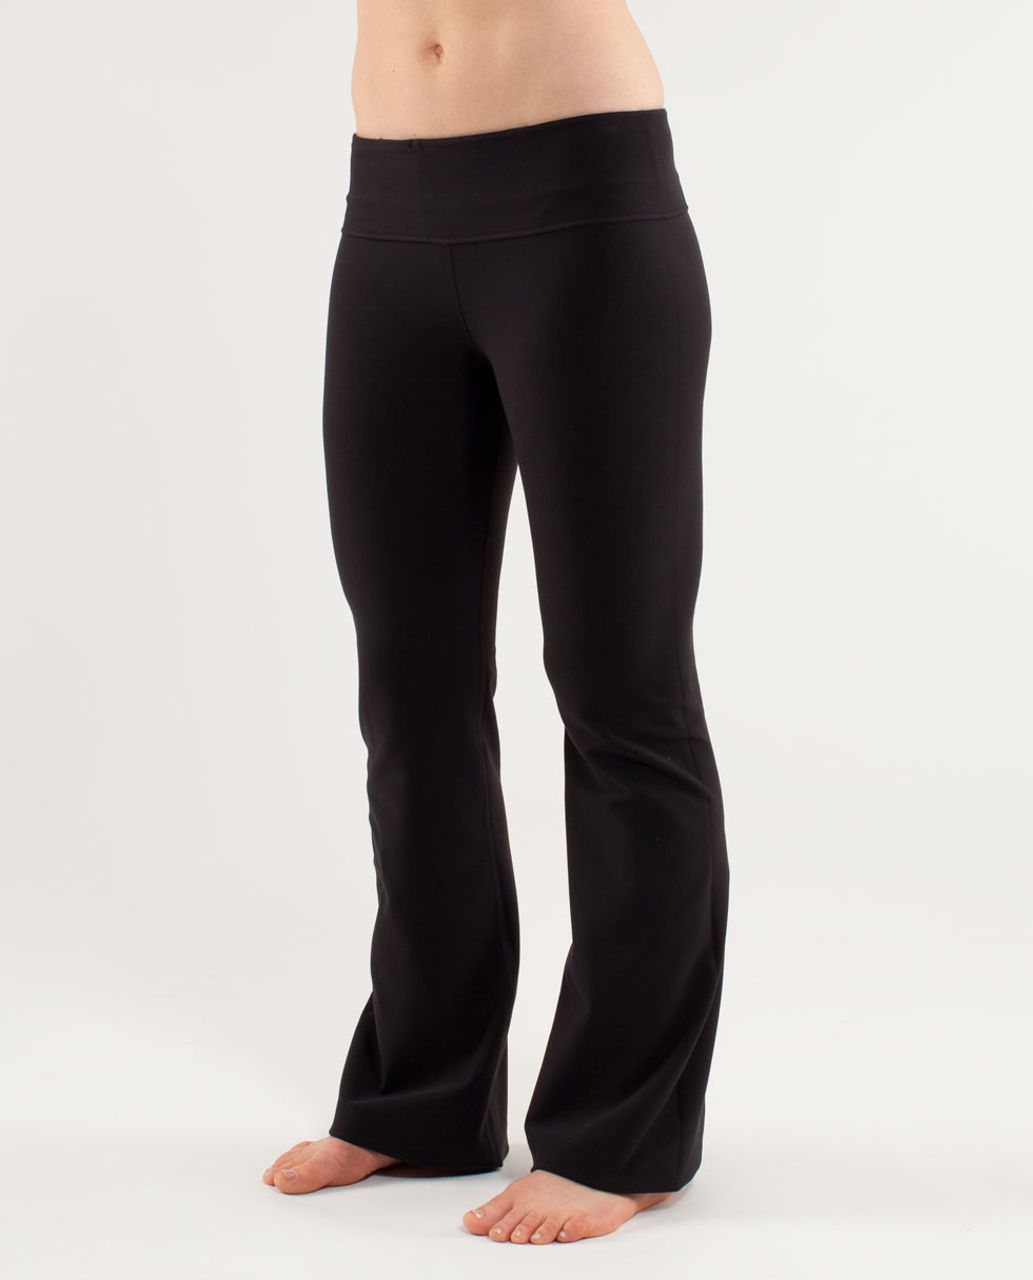 Lululemon Groove Pant (Regular) - Black /  Quilting Spring 18 /  Heathered Dune